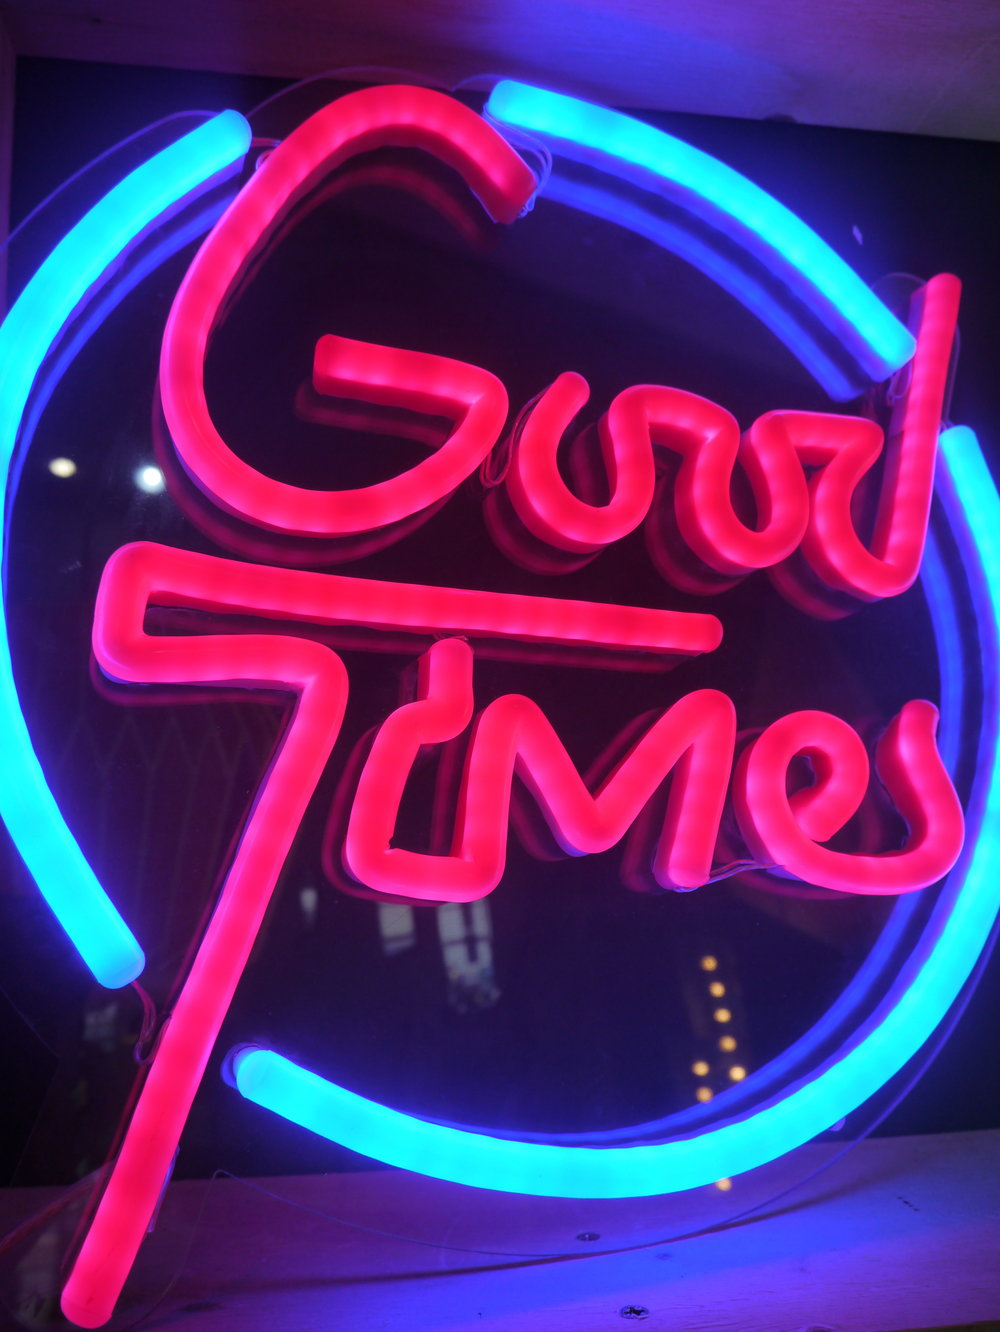 Design On My Doorstep - Good Times Love Inc LED Neon Light – By Smartstyle Interiors.JPG